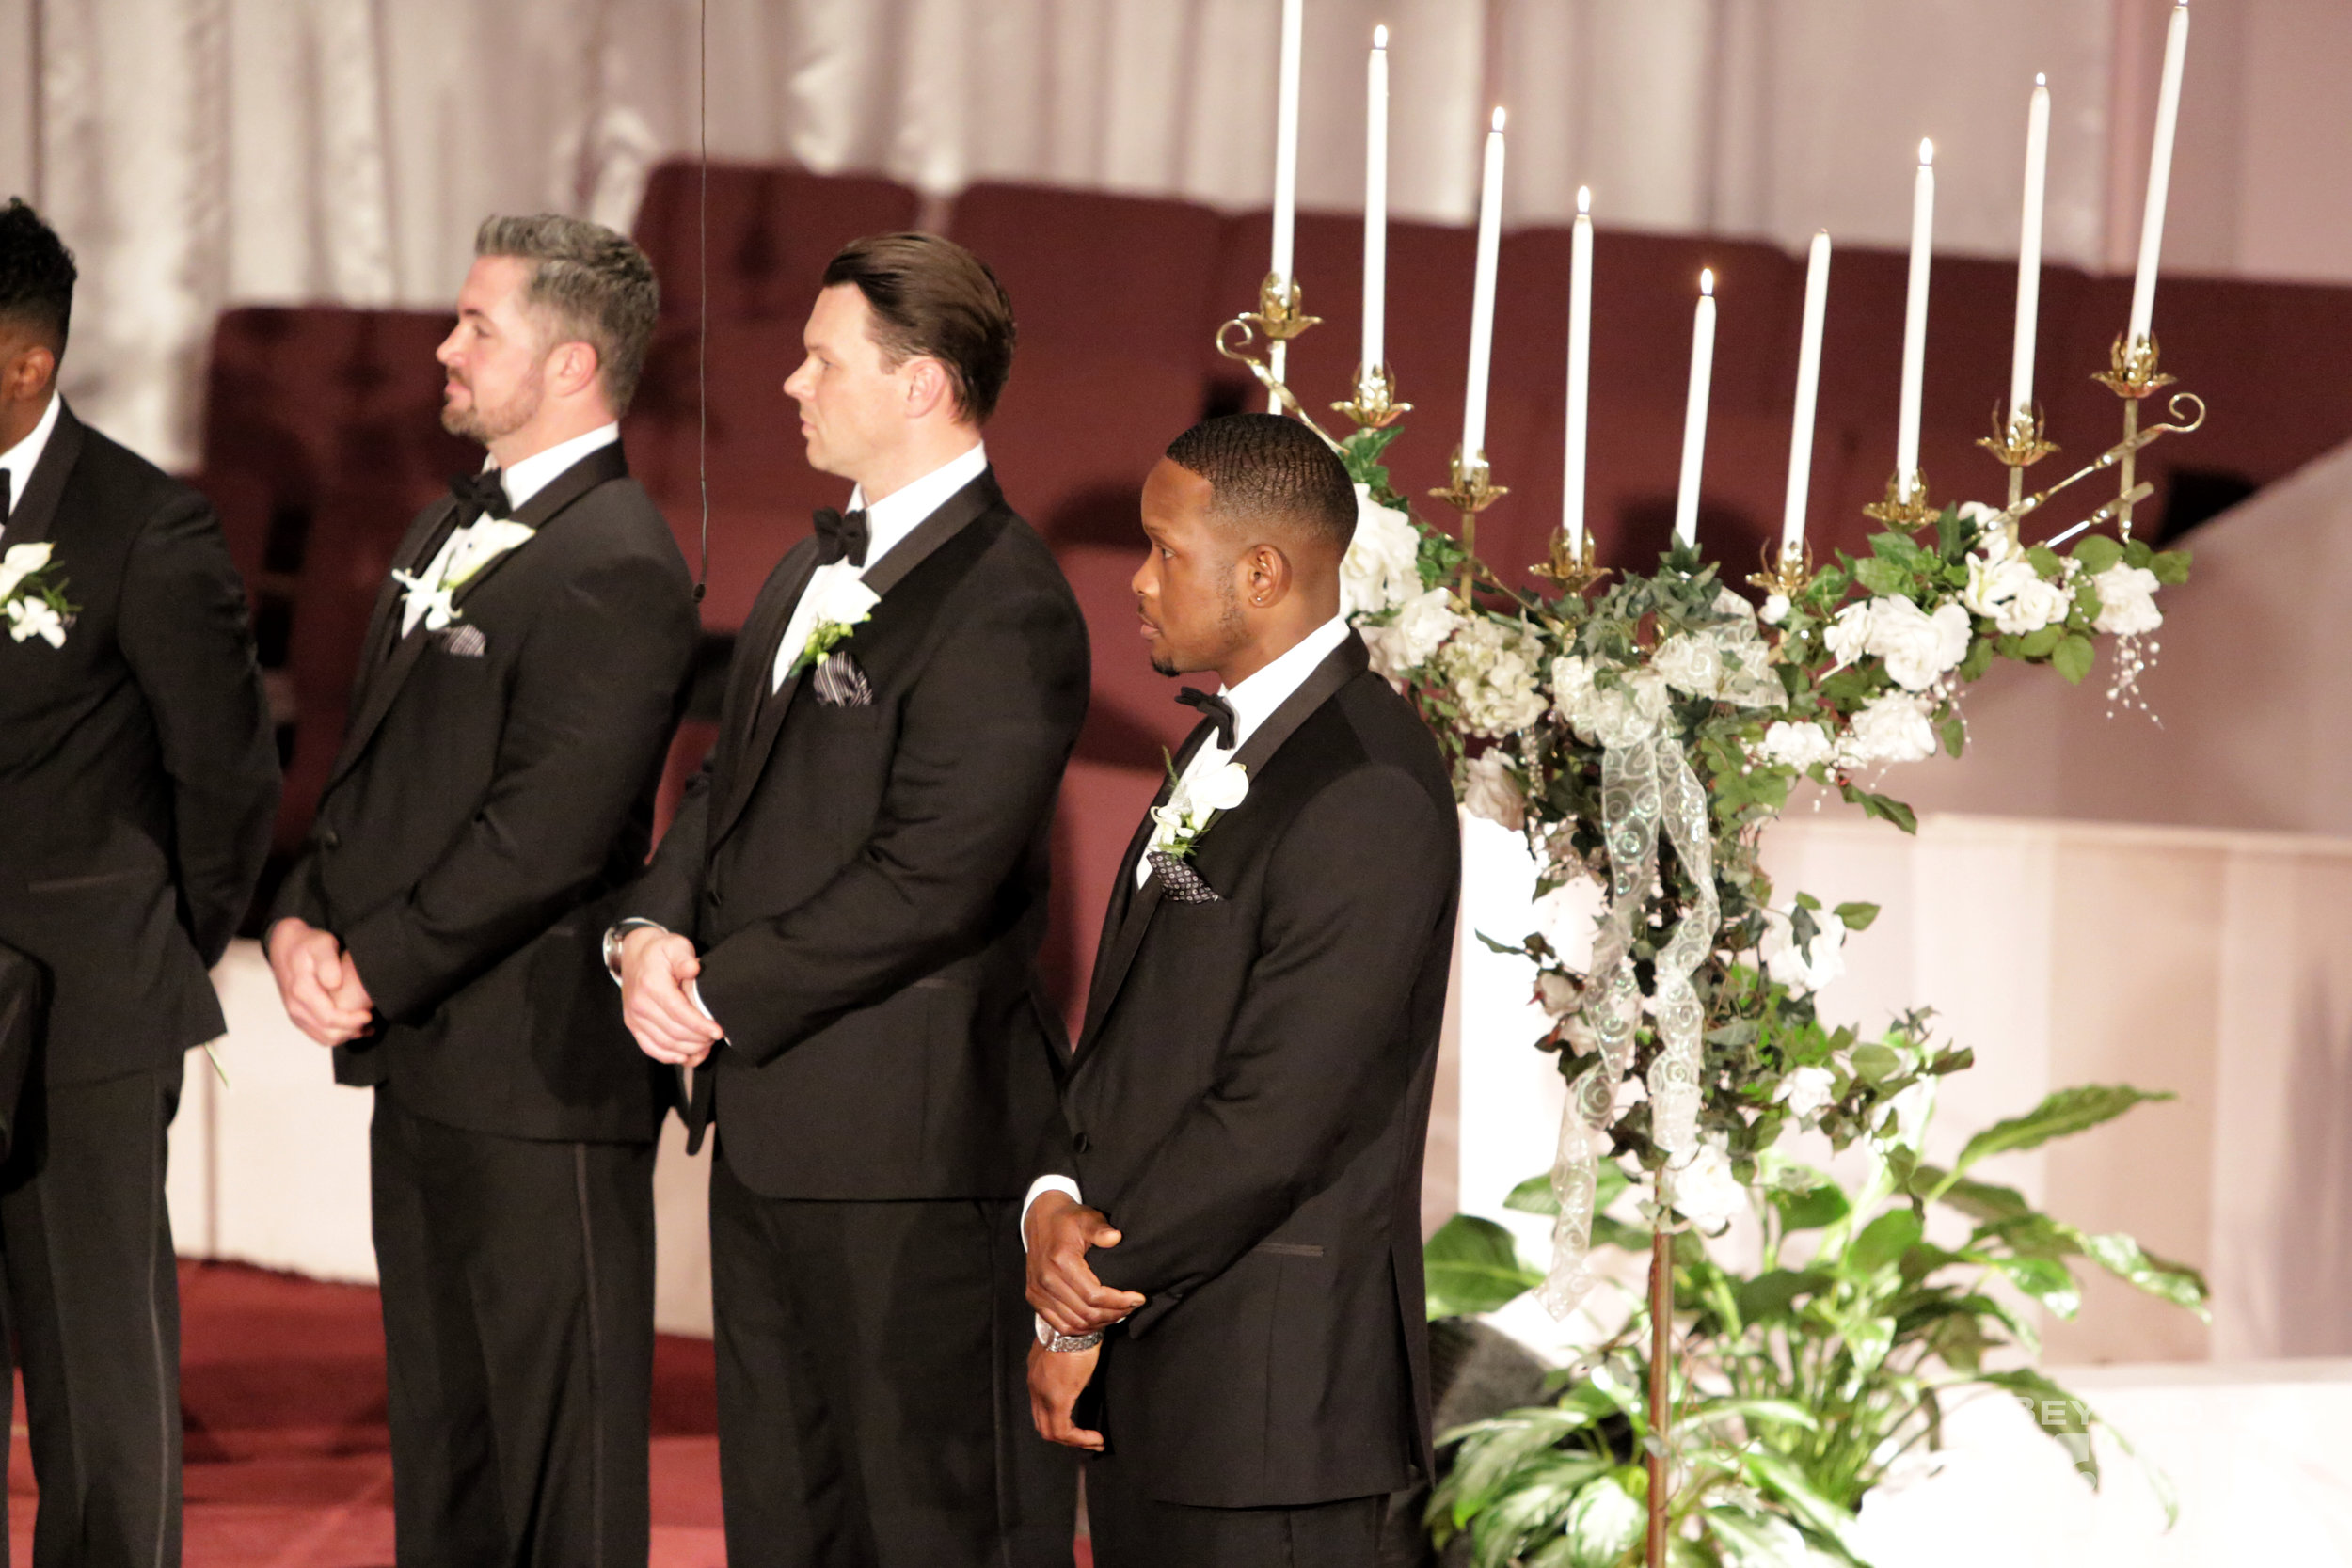 Matthews_Wedding_Ceremony_77.jpg